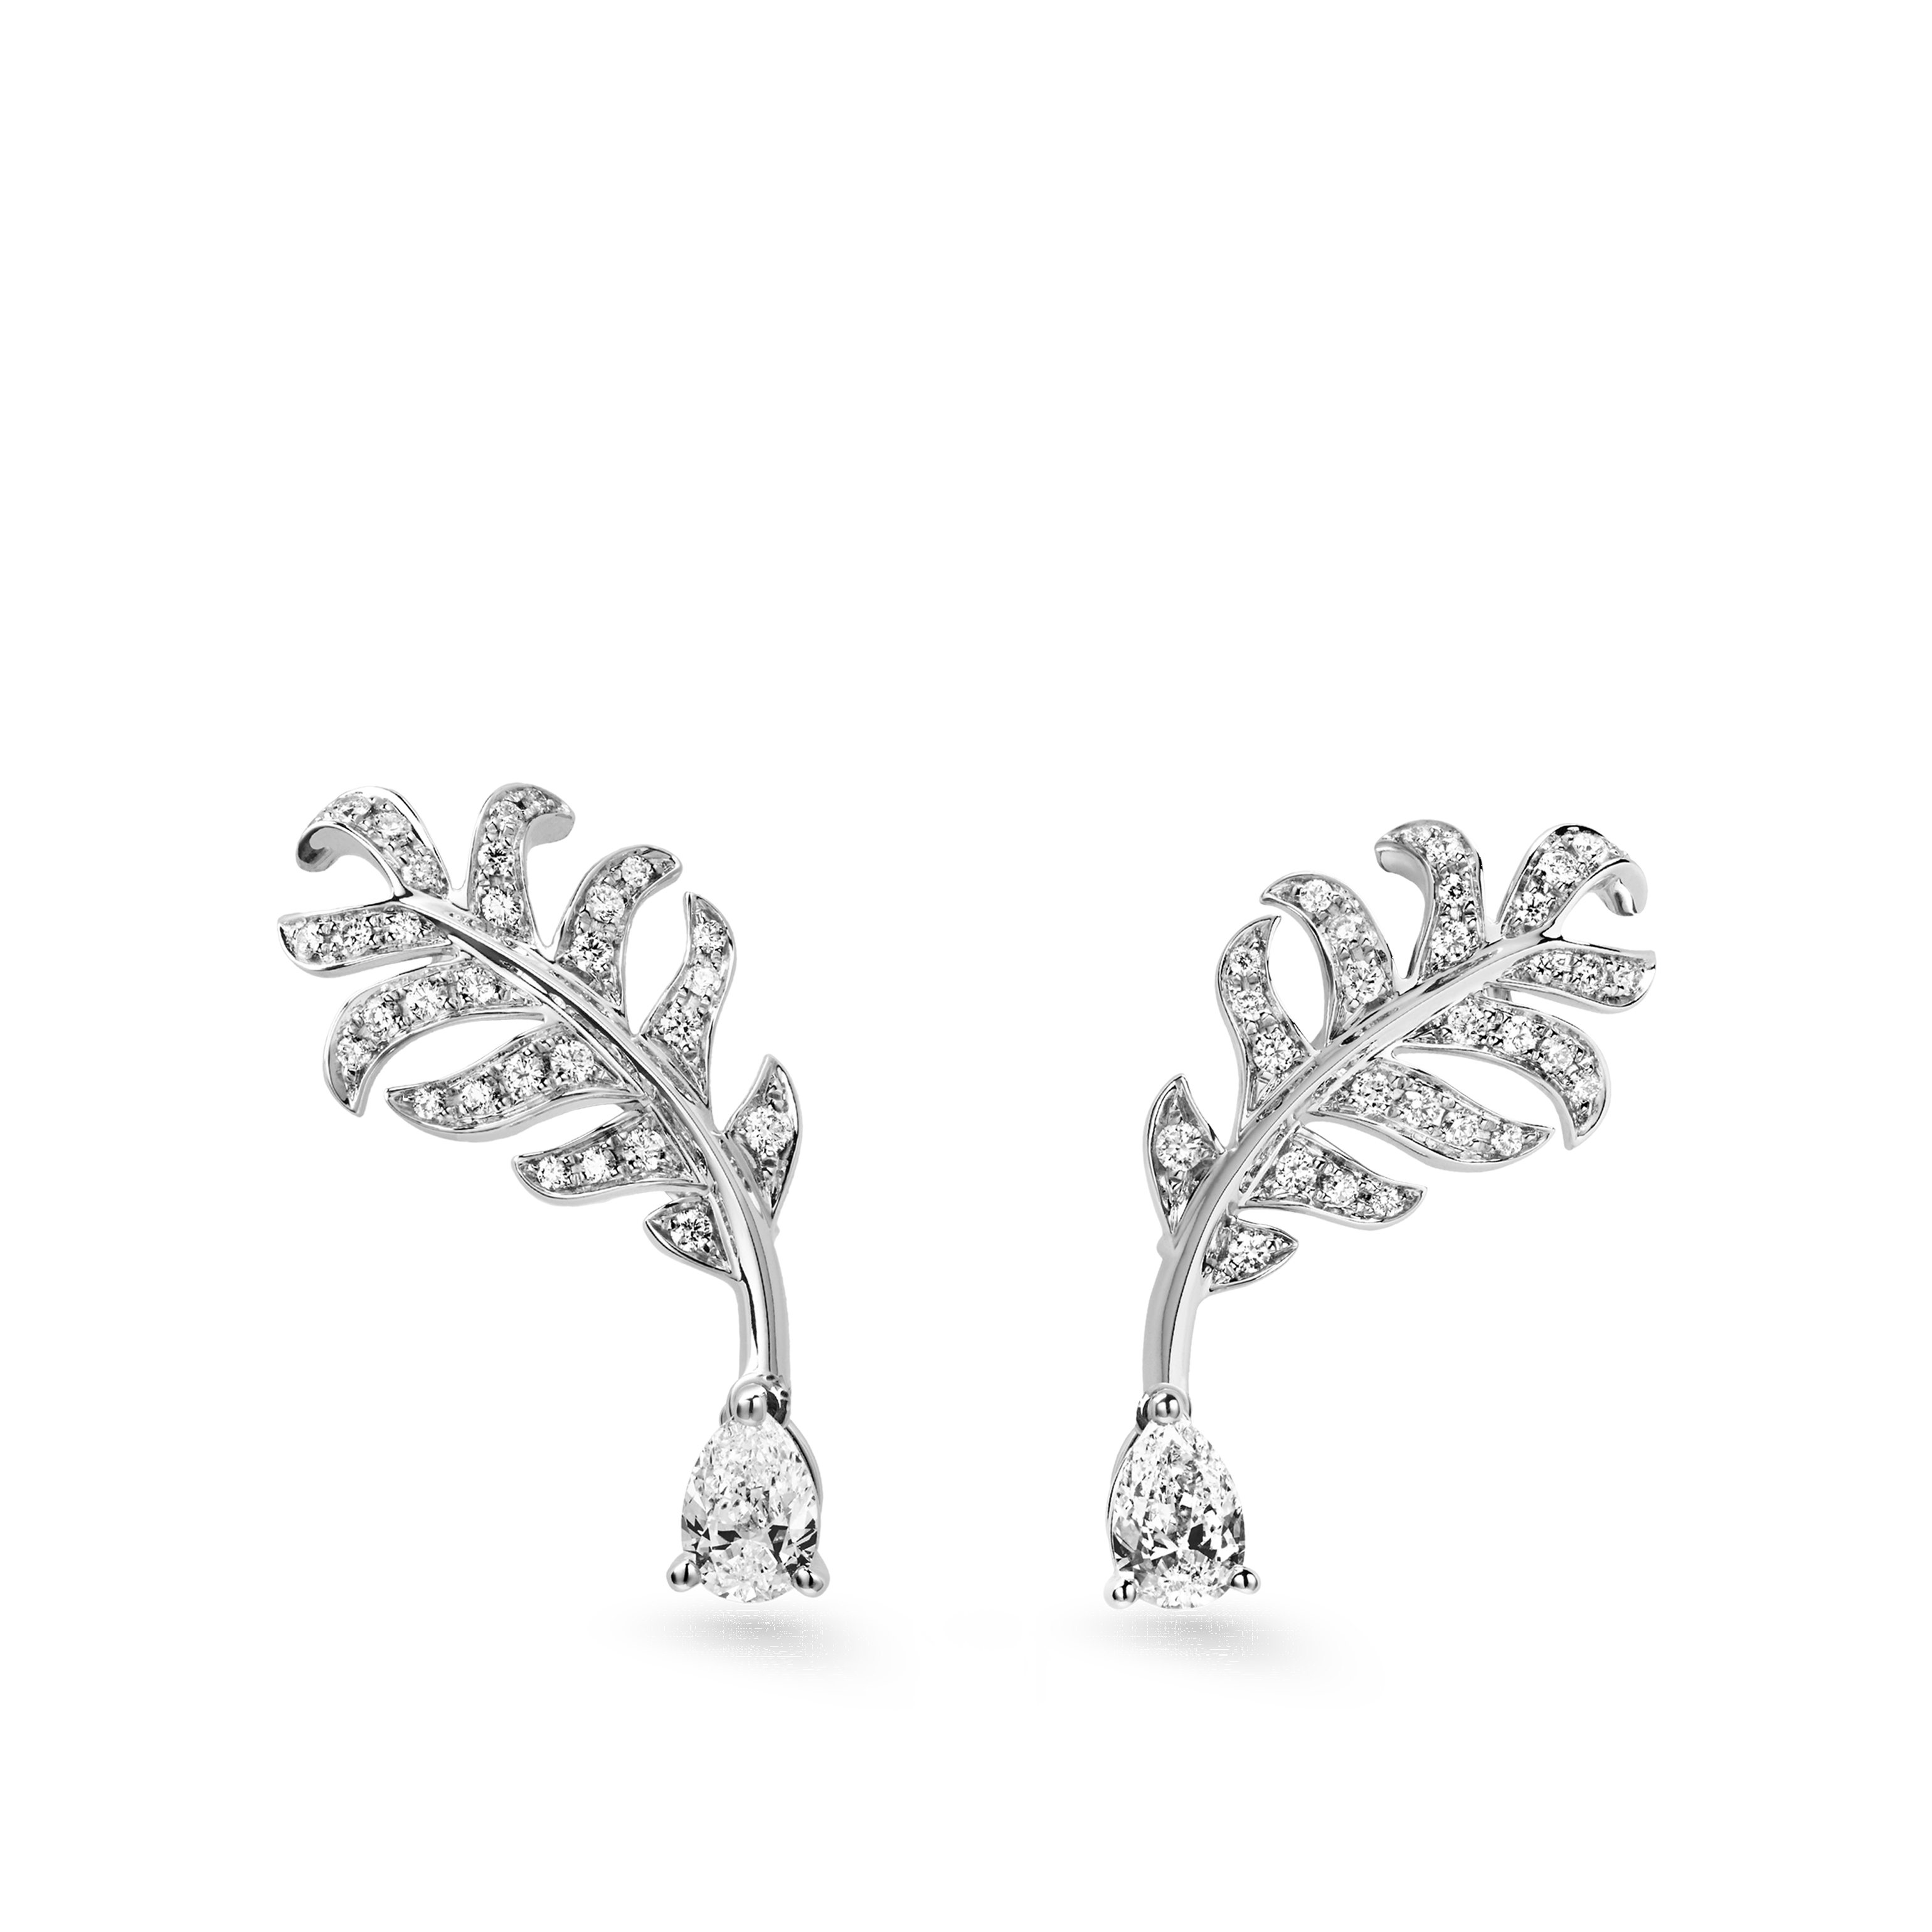 Plume de CHANEL earrings - 18K white gold, diamonds - CHANEL - Default view - see standard sized version